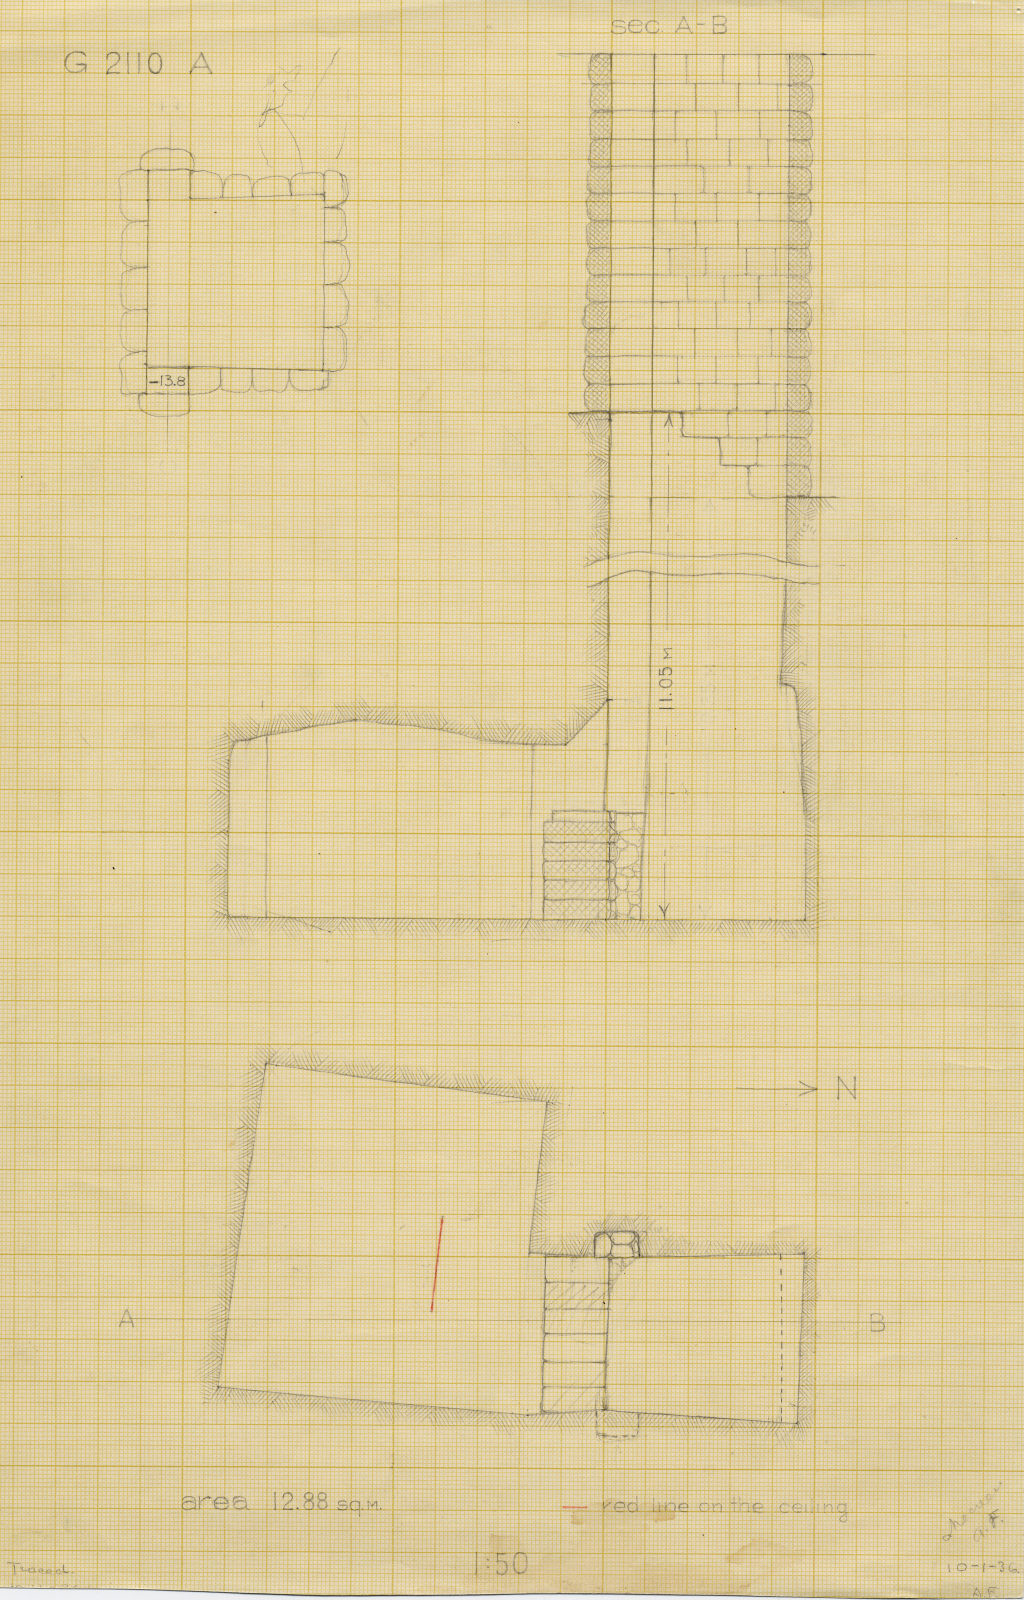 Maps and plans: G 2110, Shaft A